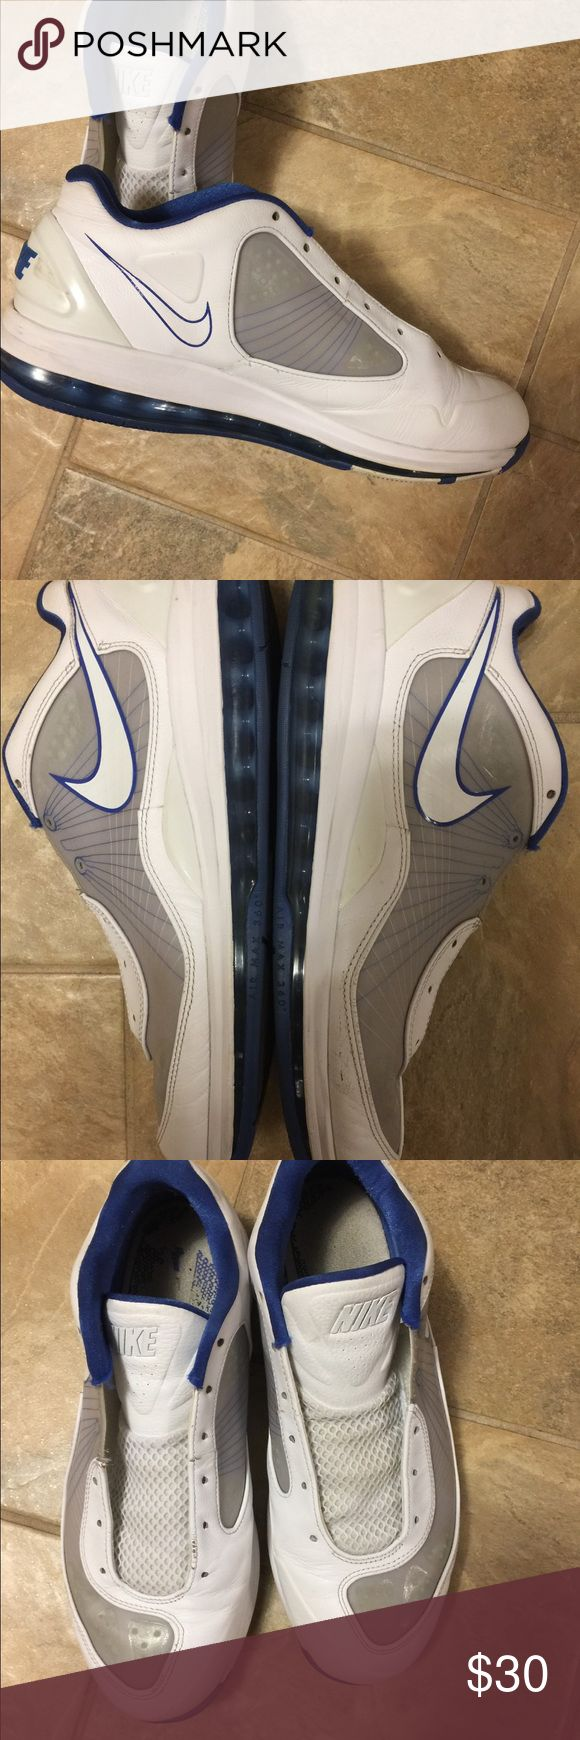 Nike Shoes White & Blue Nike Mid Top Shoes. In good condition. Needs shoe strings. Nike Shoes Sneakers